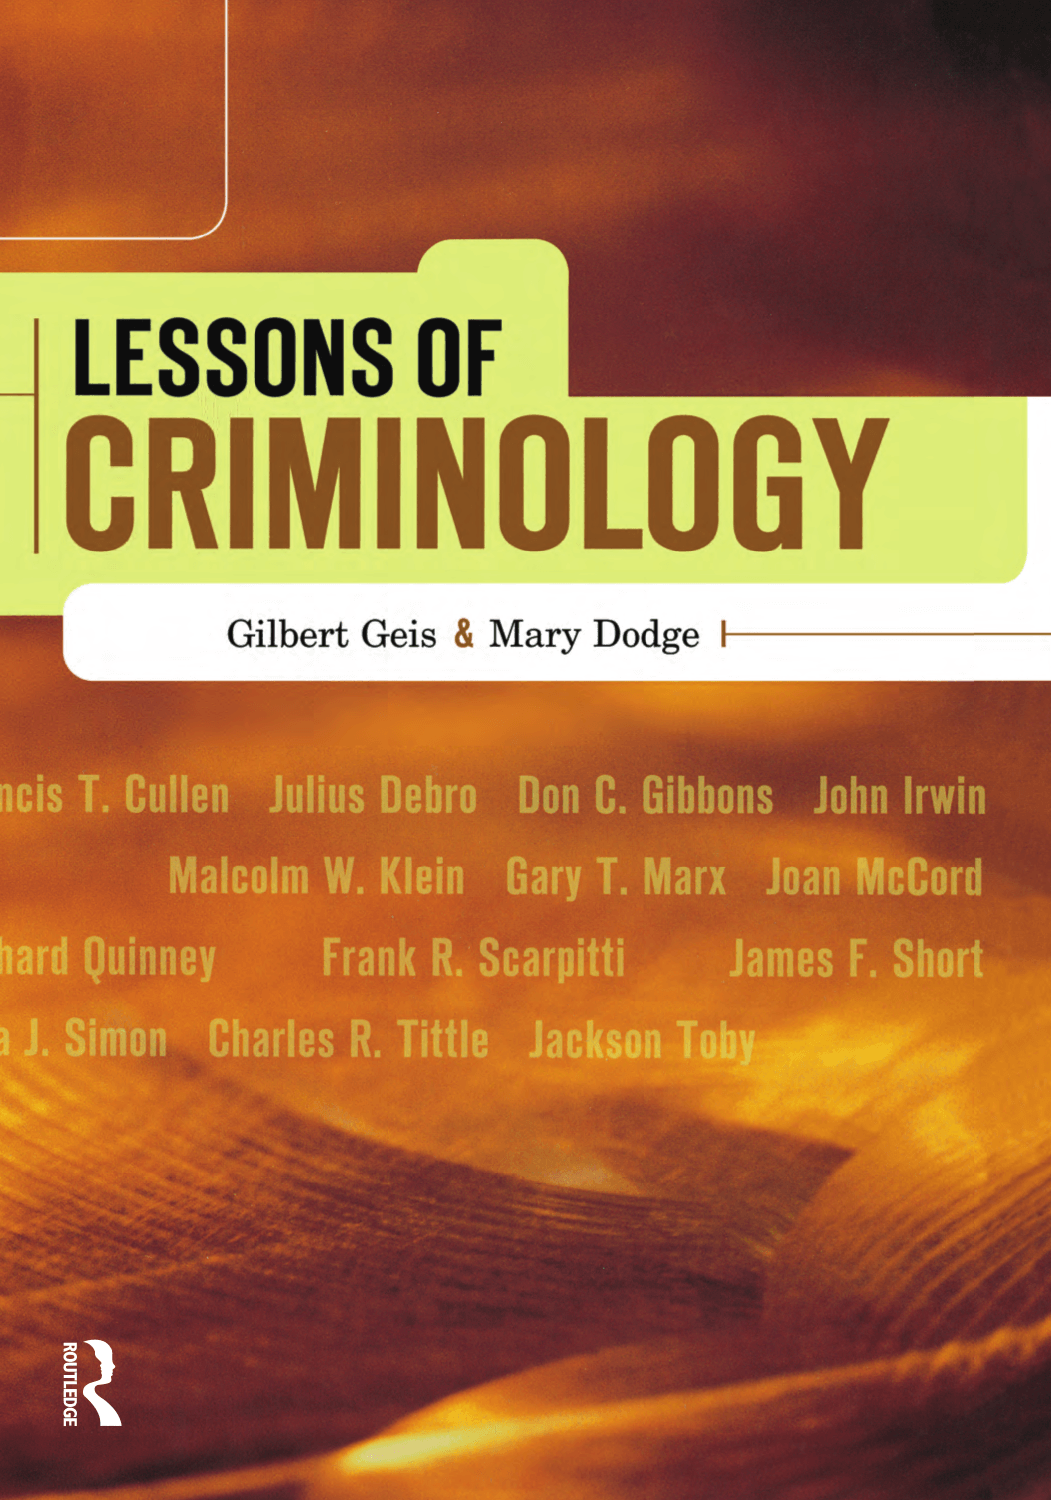 criminology and francis t cullen